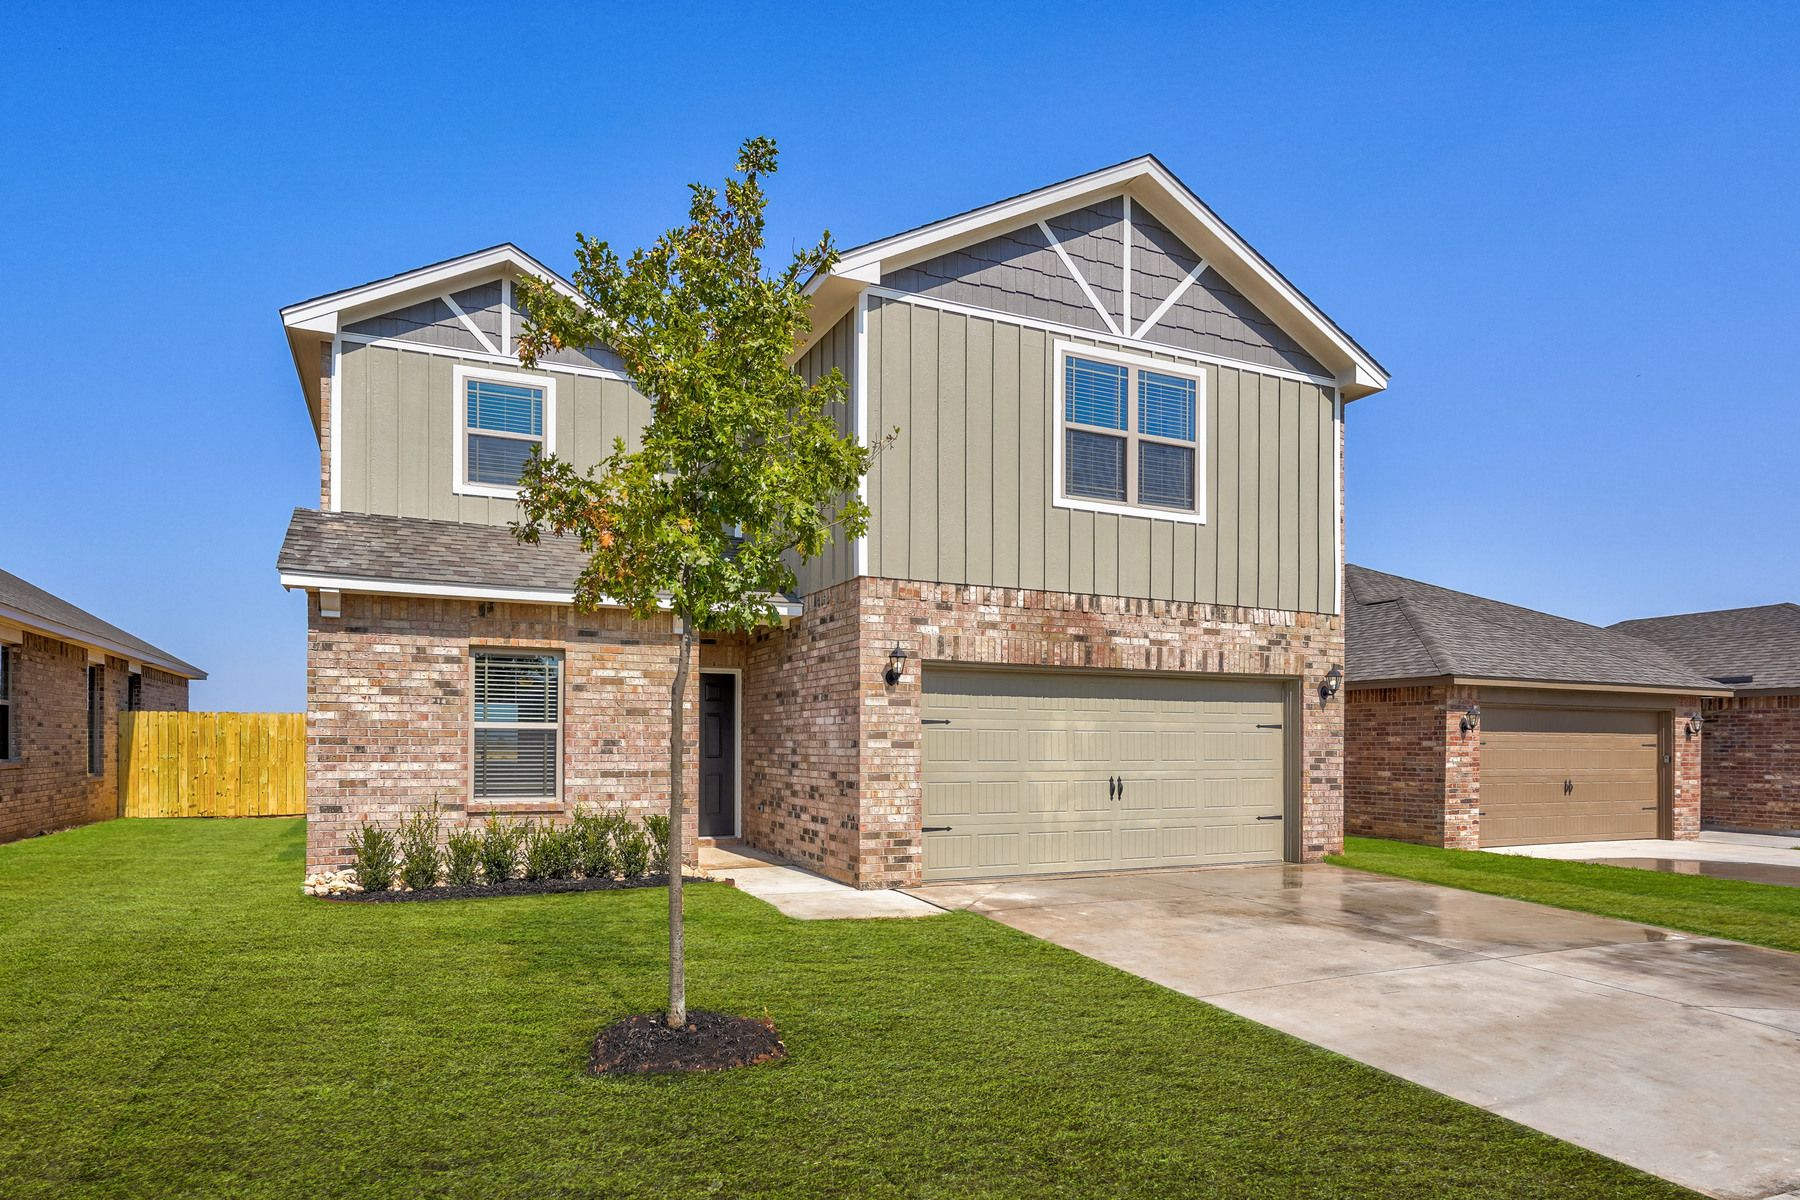 The Driftwood by LGI Homes:The Driftwood has incredible curb appeal.